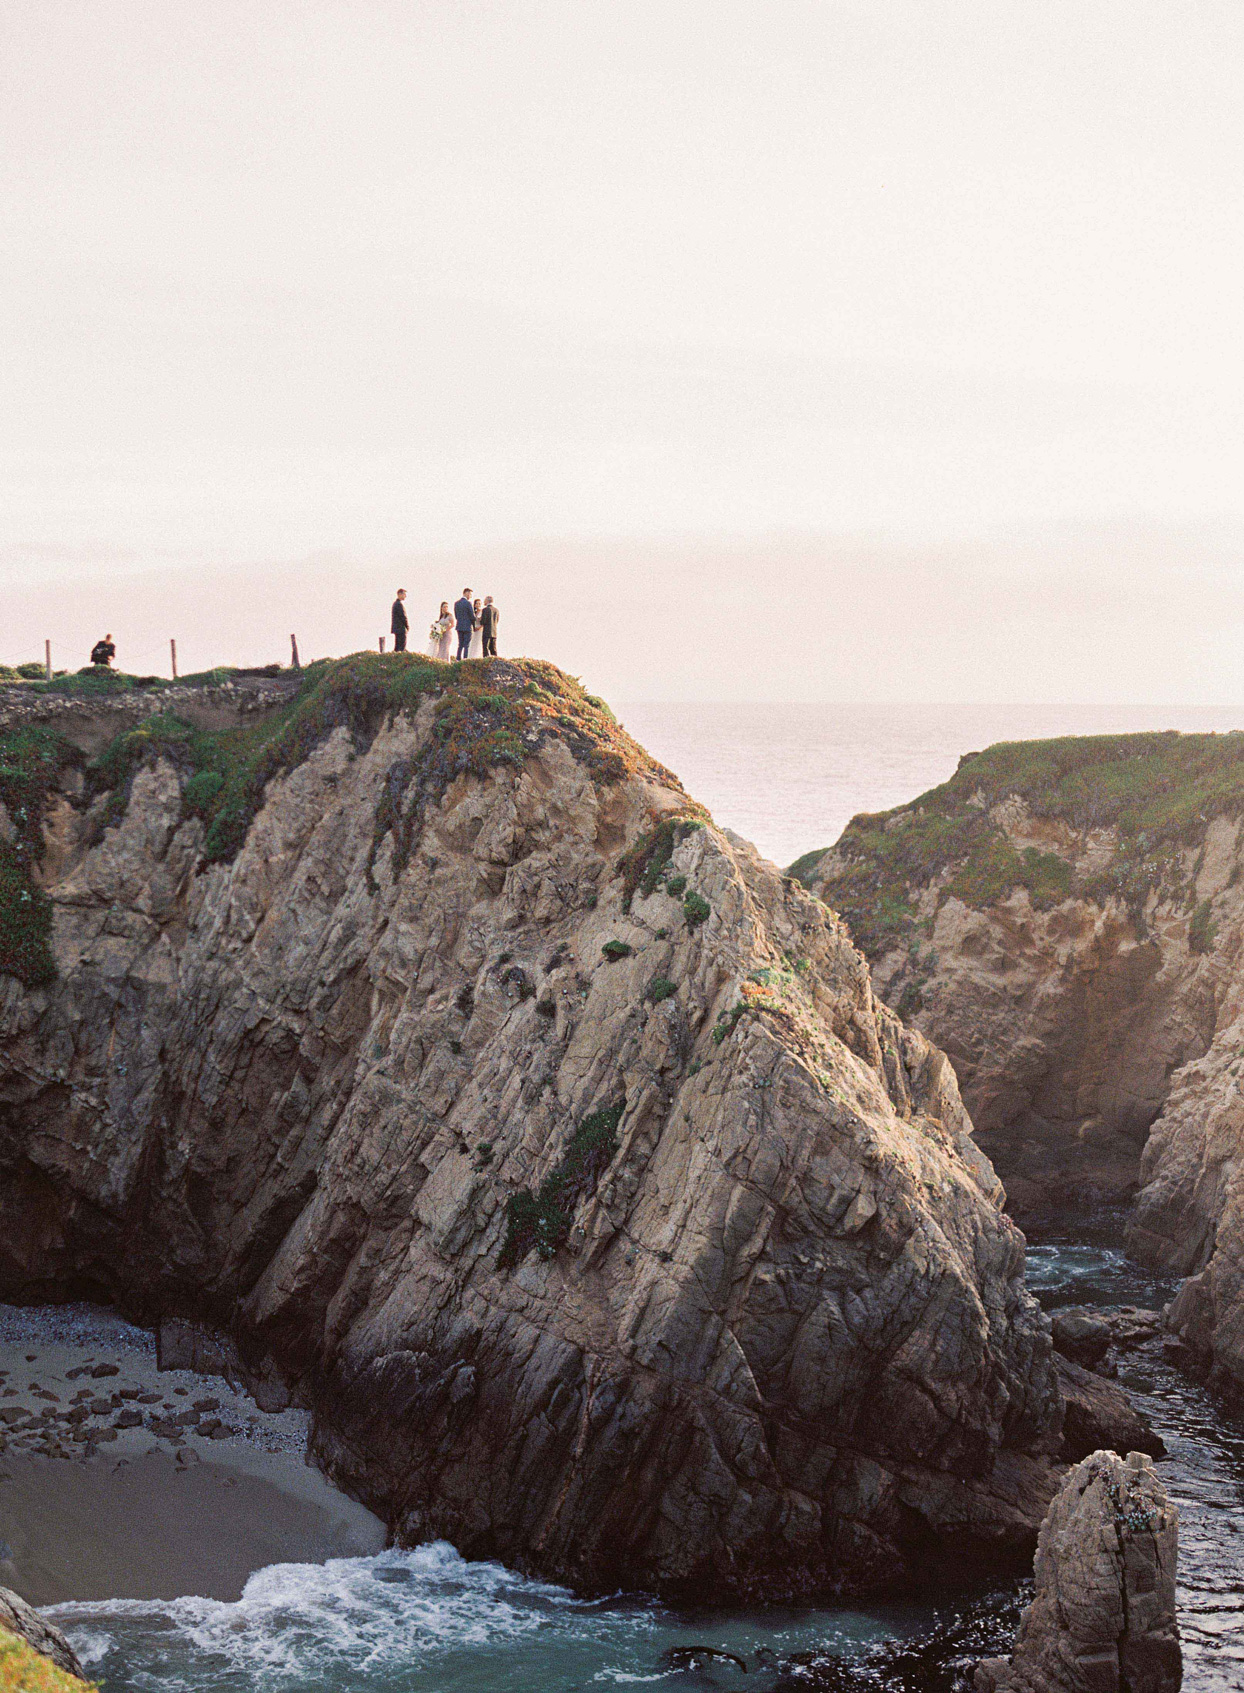 wedding party standing on cliff by the ocean